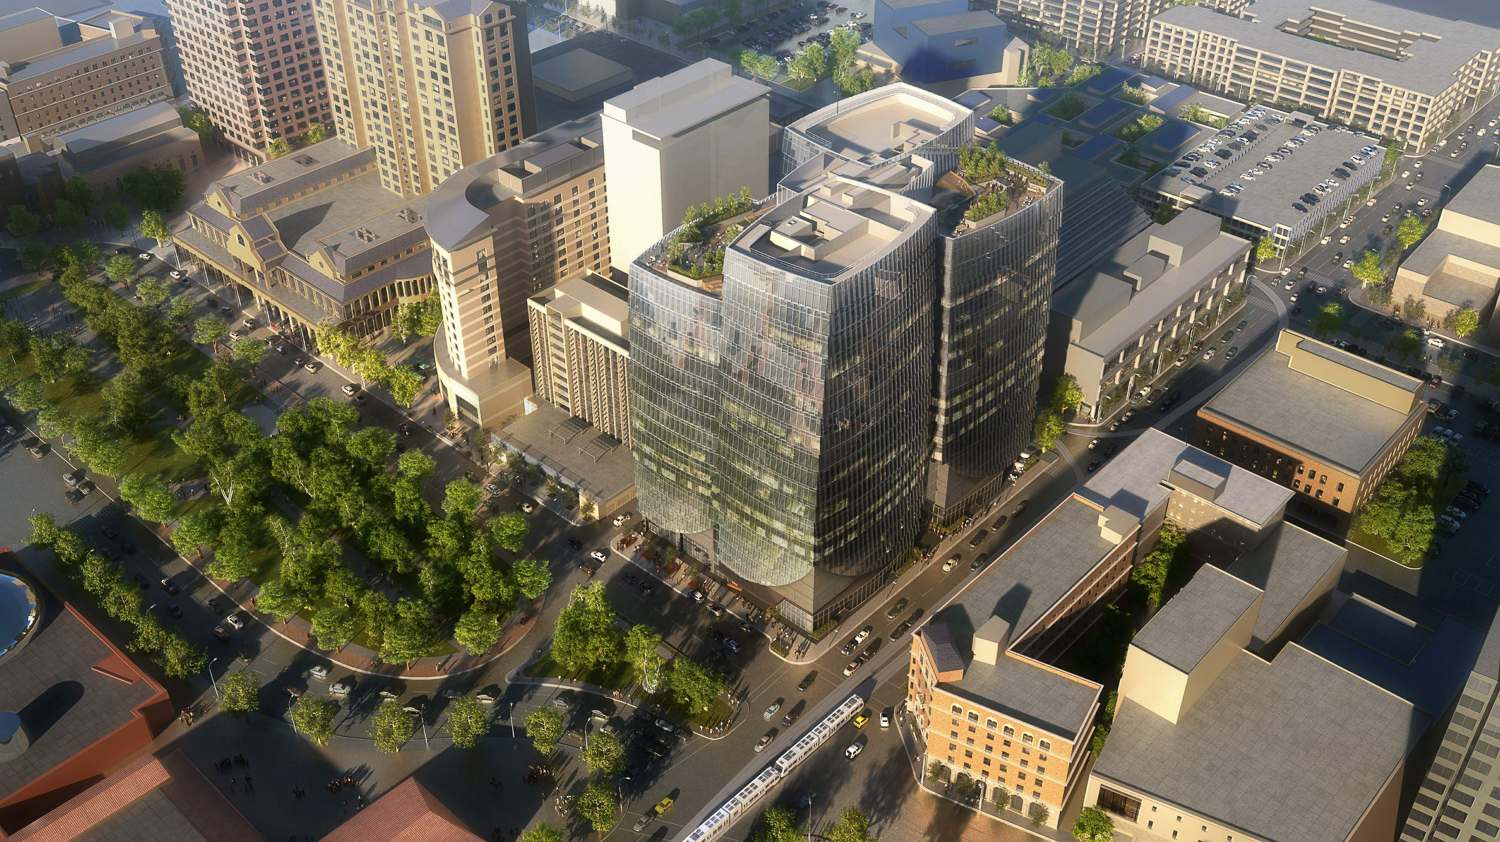 282 South Market Street aerial view, design by Arquitectonica